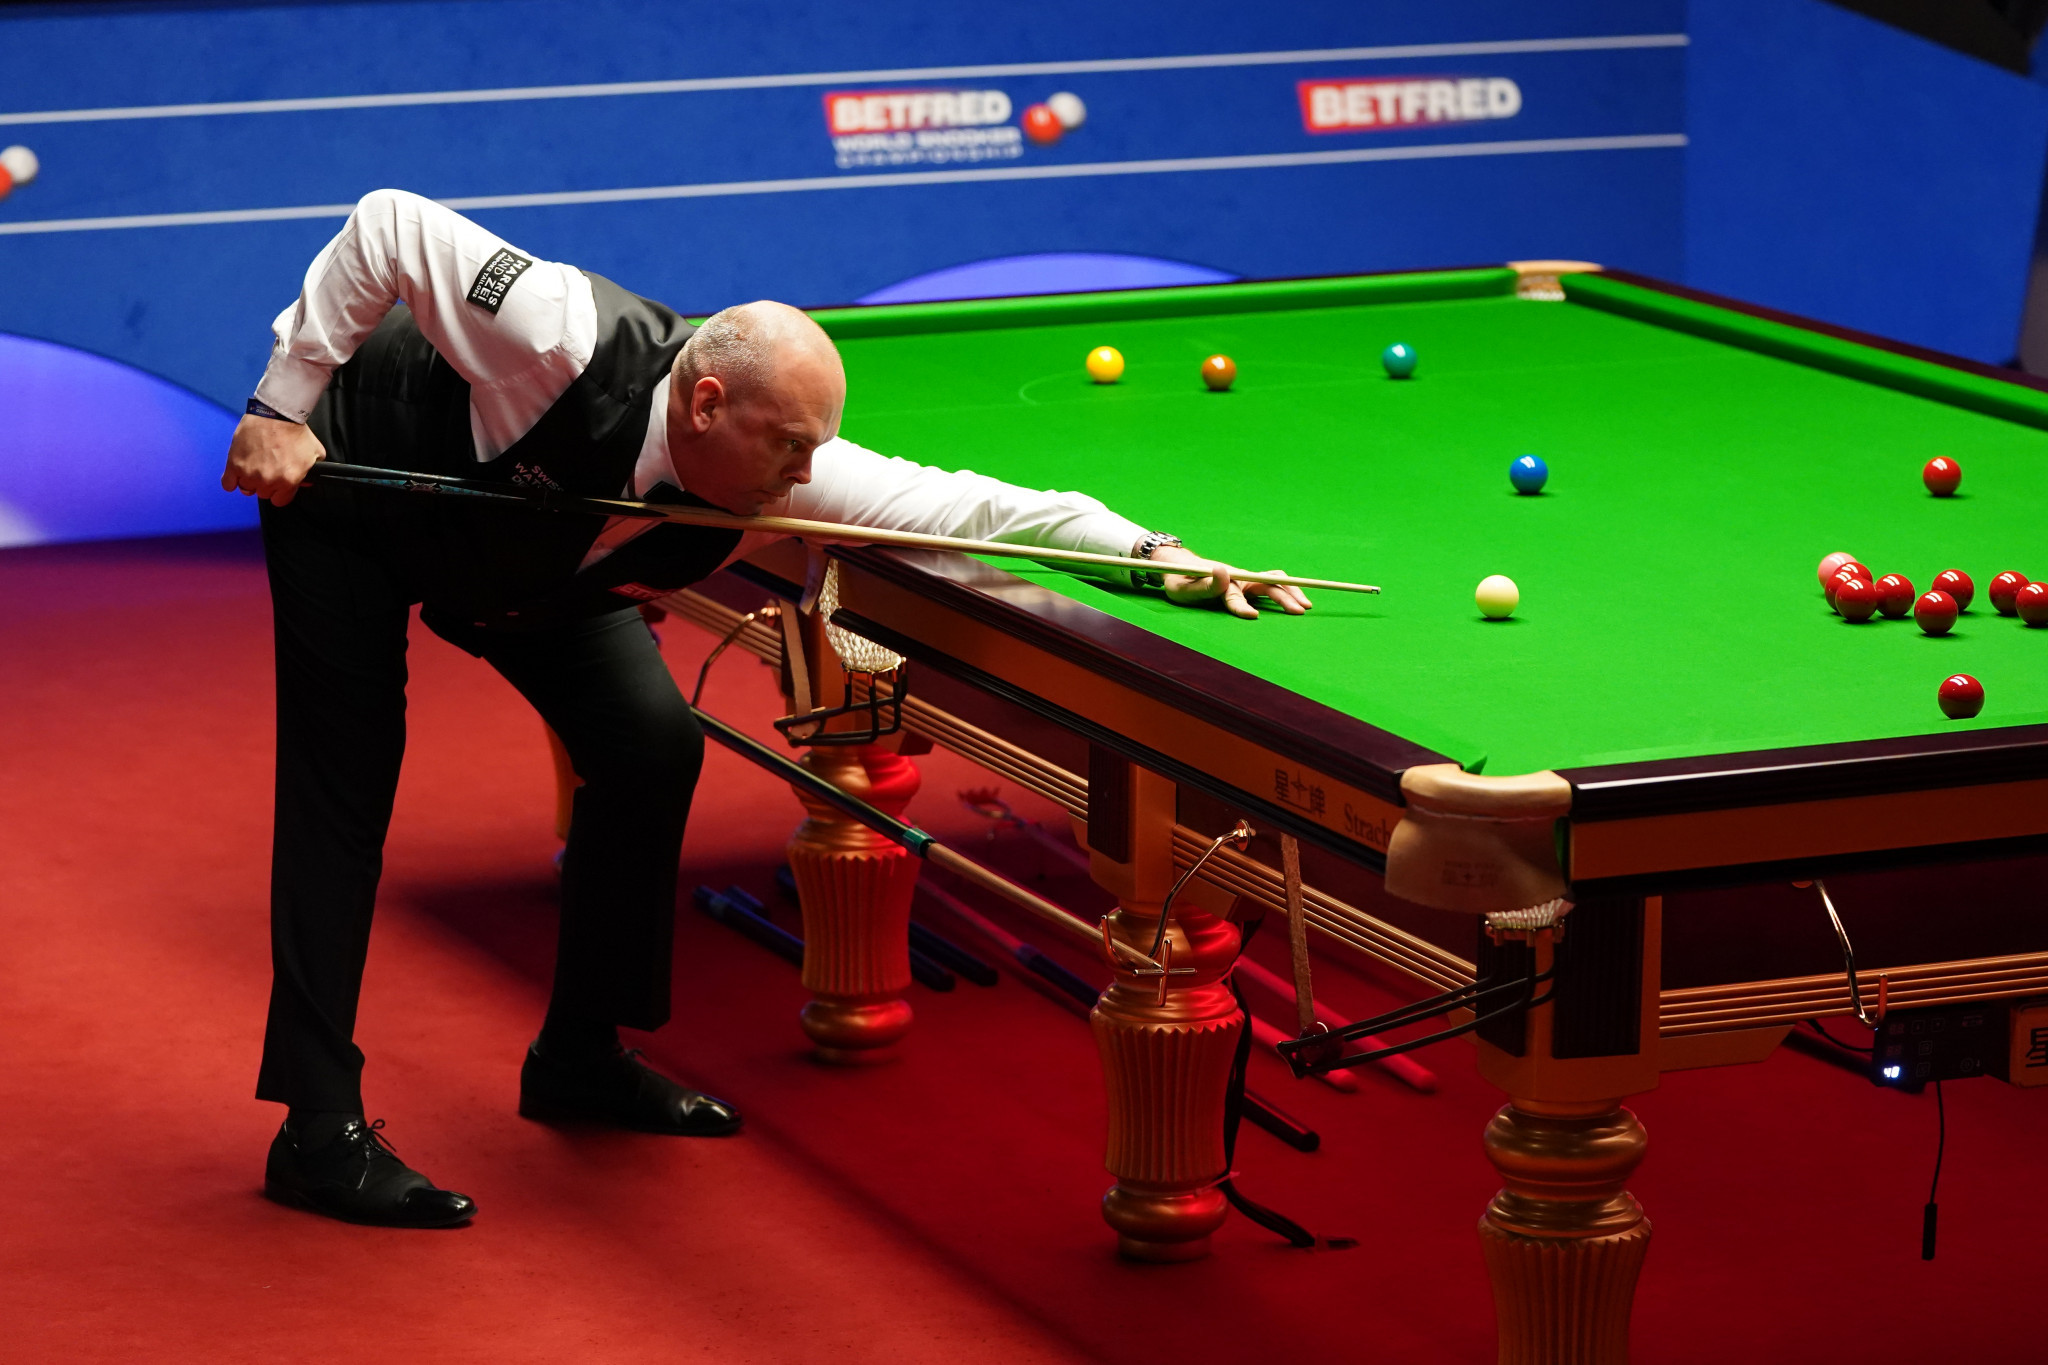 Bingham and Wilson lead heading into final day of World Snooker Championship semi-finals